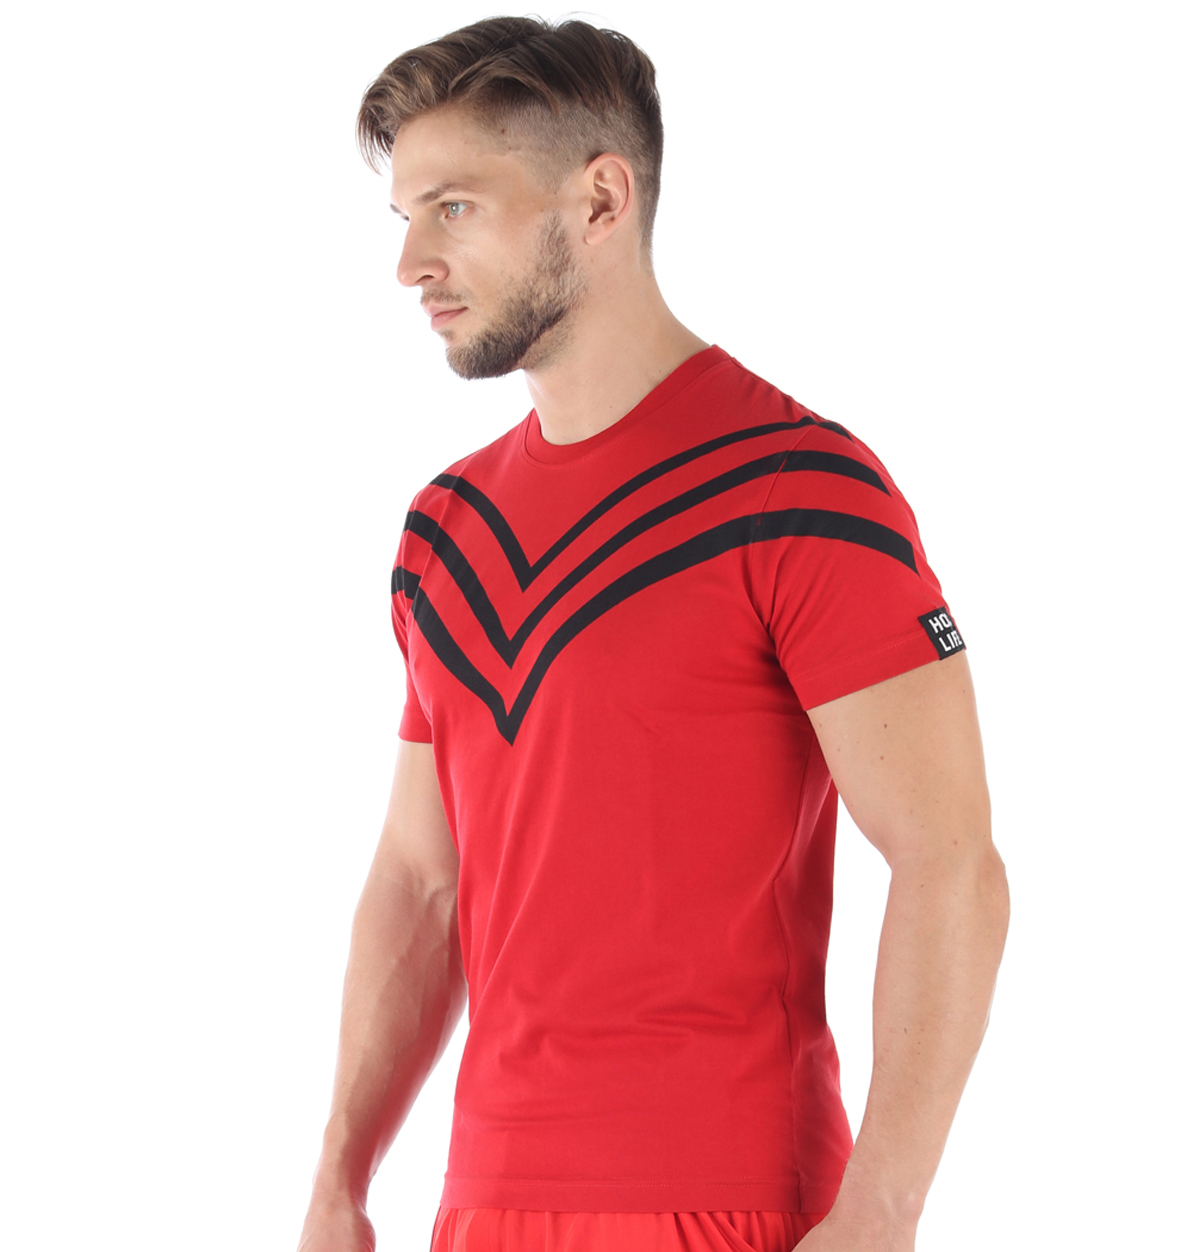 MRNT_V_STRIPE_RED_SIDE3.jpg